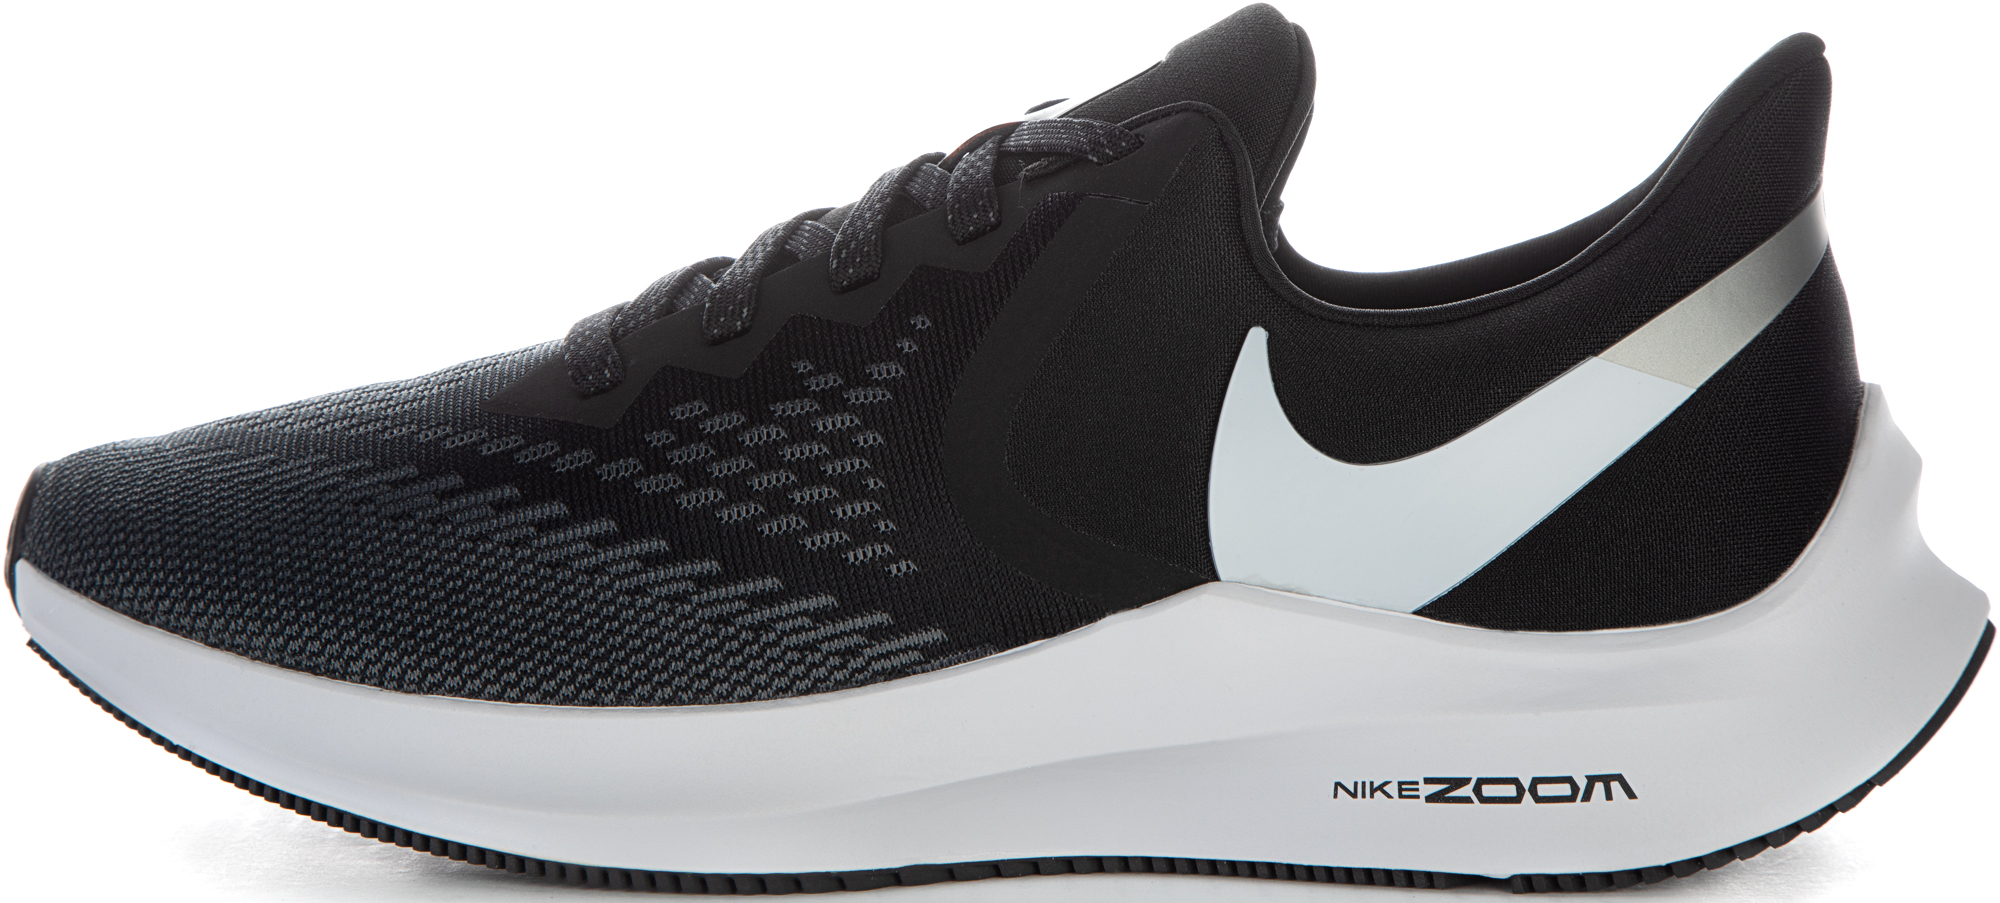 Nike Кроссовки женские Nike Air Zoom Winflo, размер 39 nike кроссовки женские nike zoom cage 3 размер 41